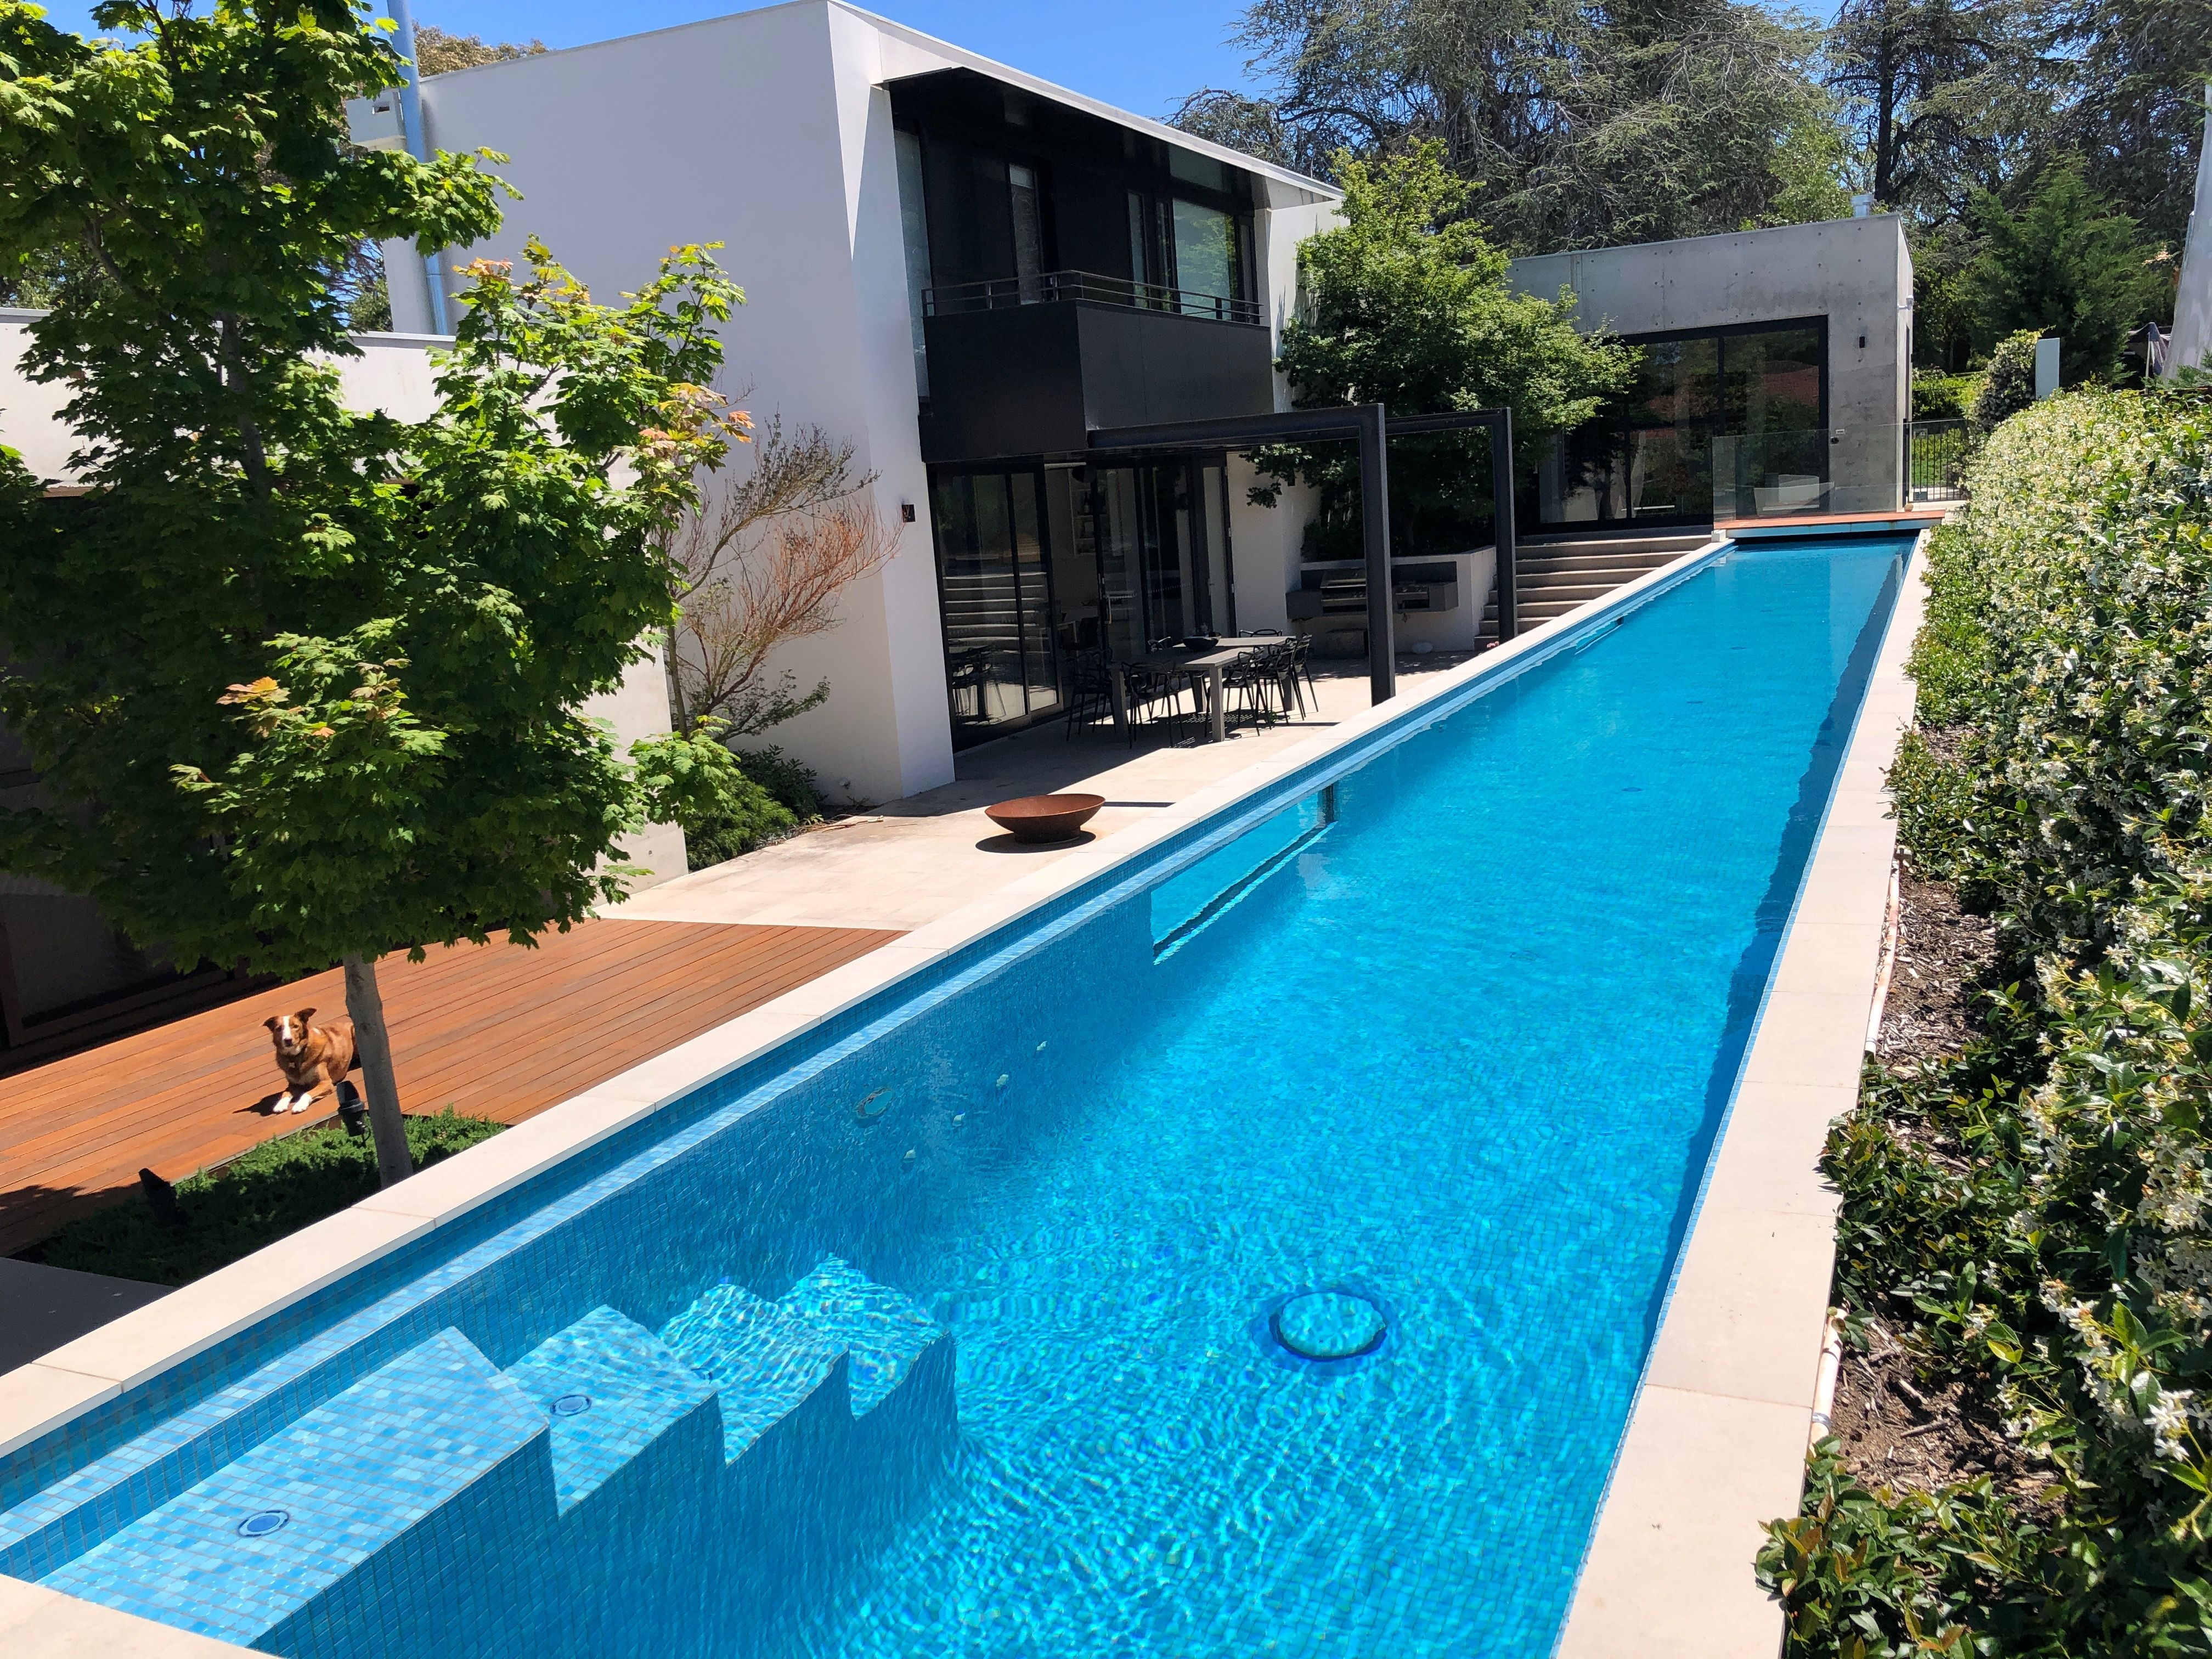 Above Ground 25m Lap Pool 1 2m Height And 2 4m Wide With Steps For Easy Entry Lap Pools Backyard Lap Pool Designs Garden Pool Design